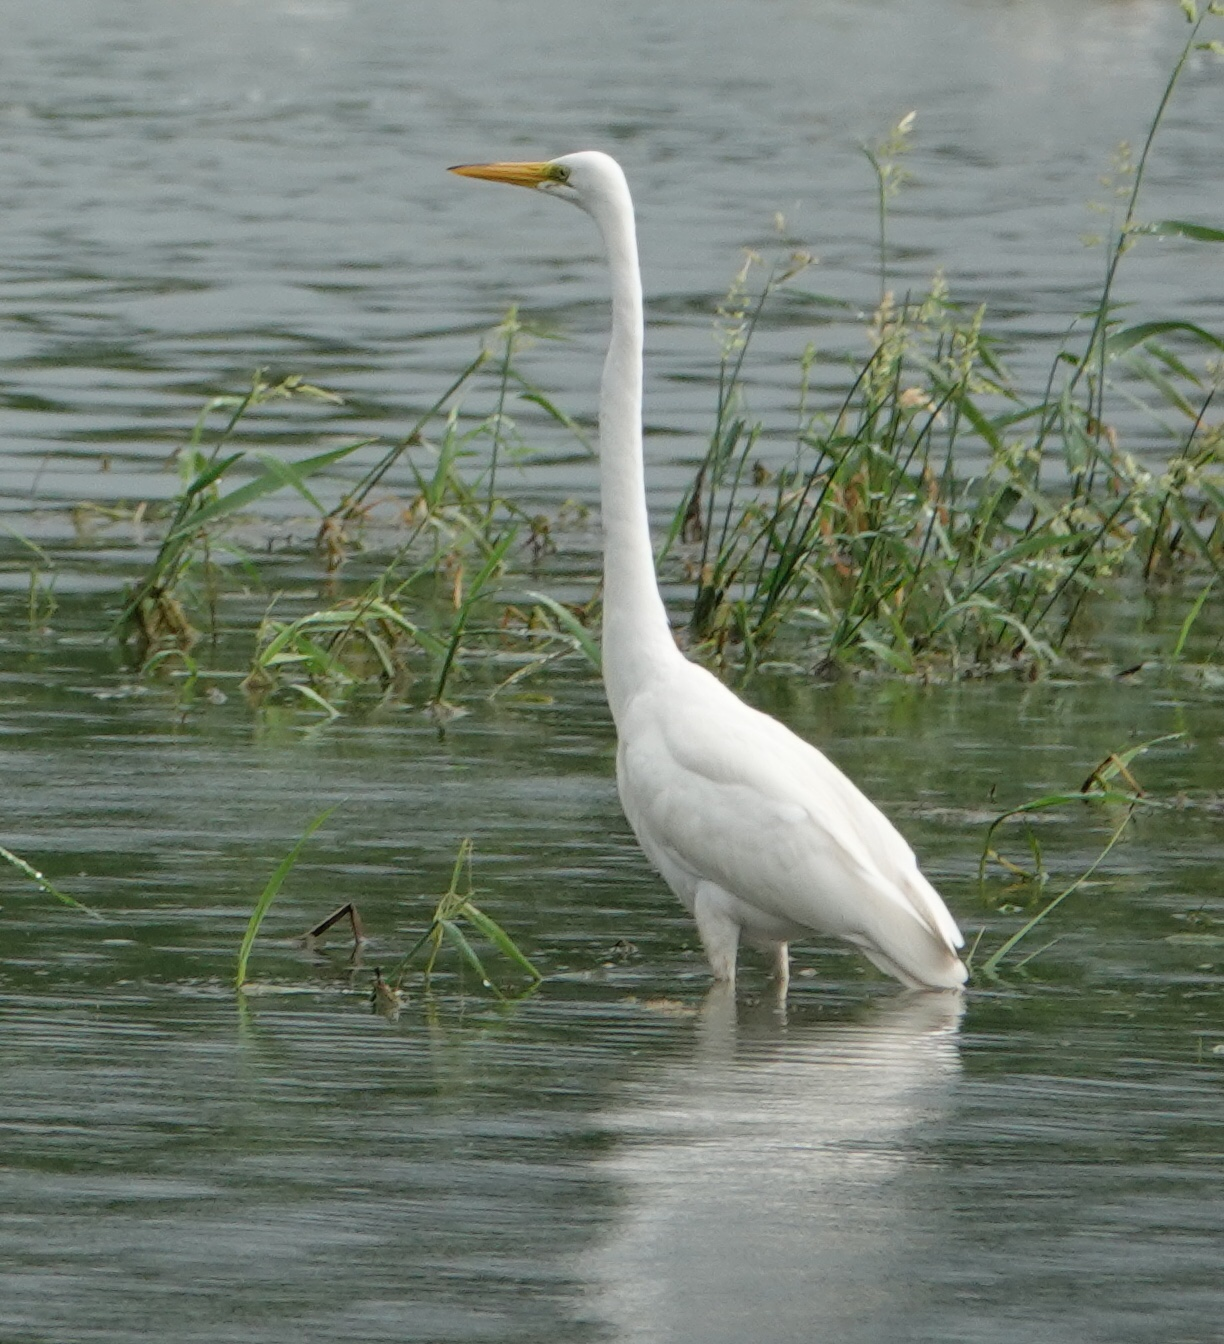 A great Great Egret.